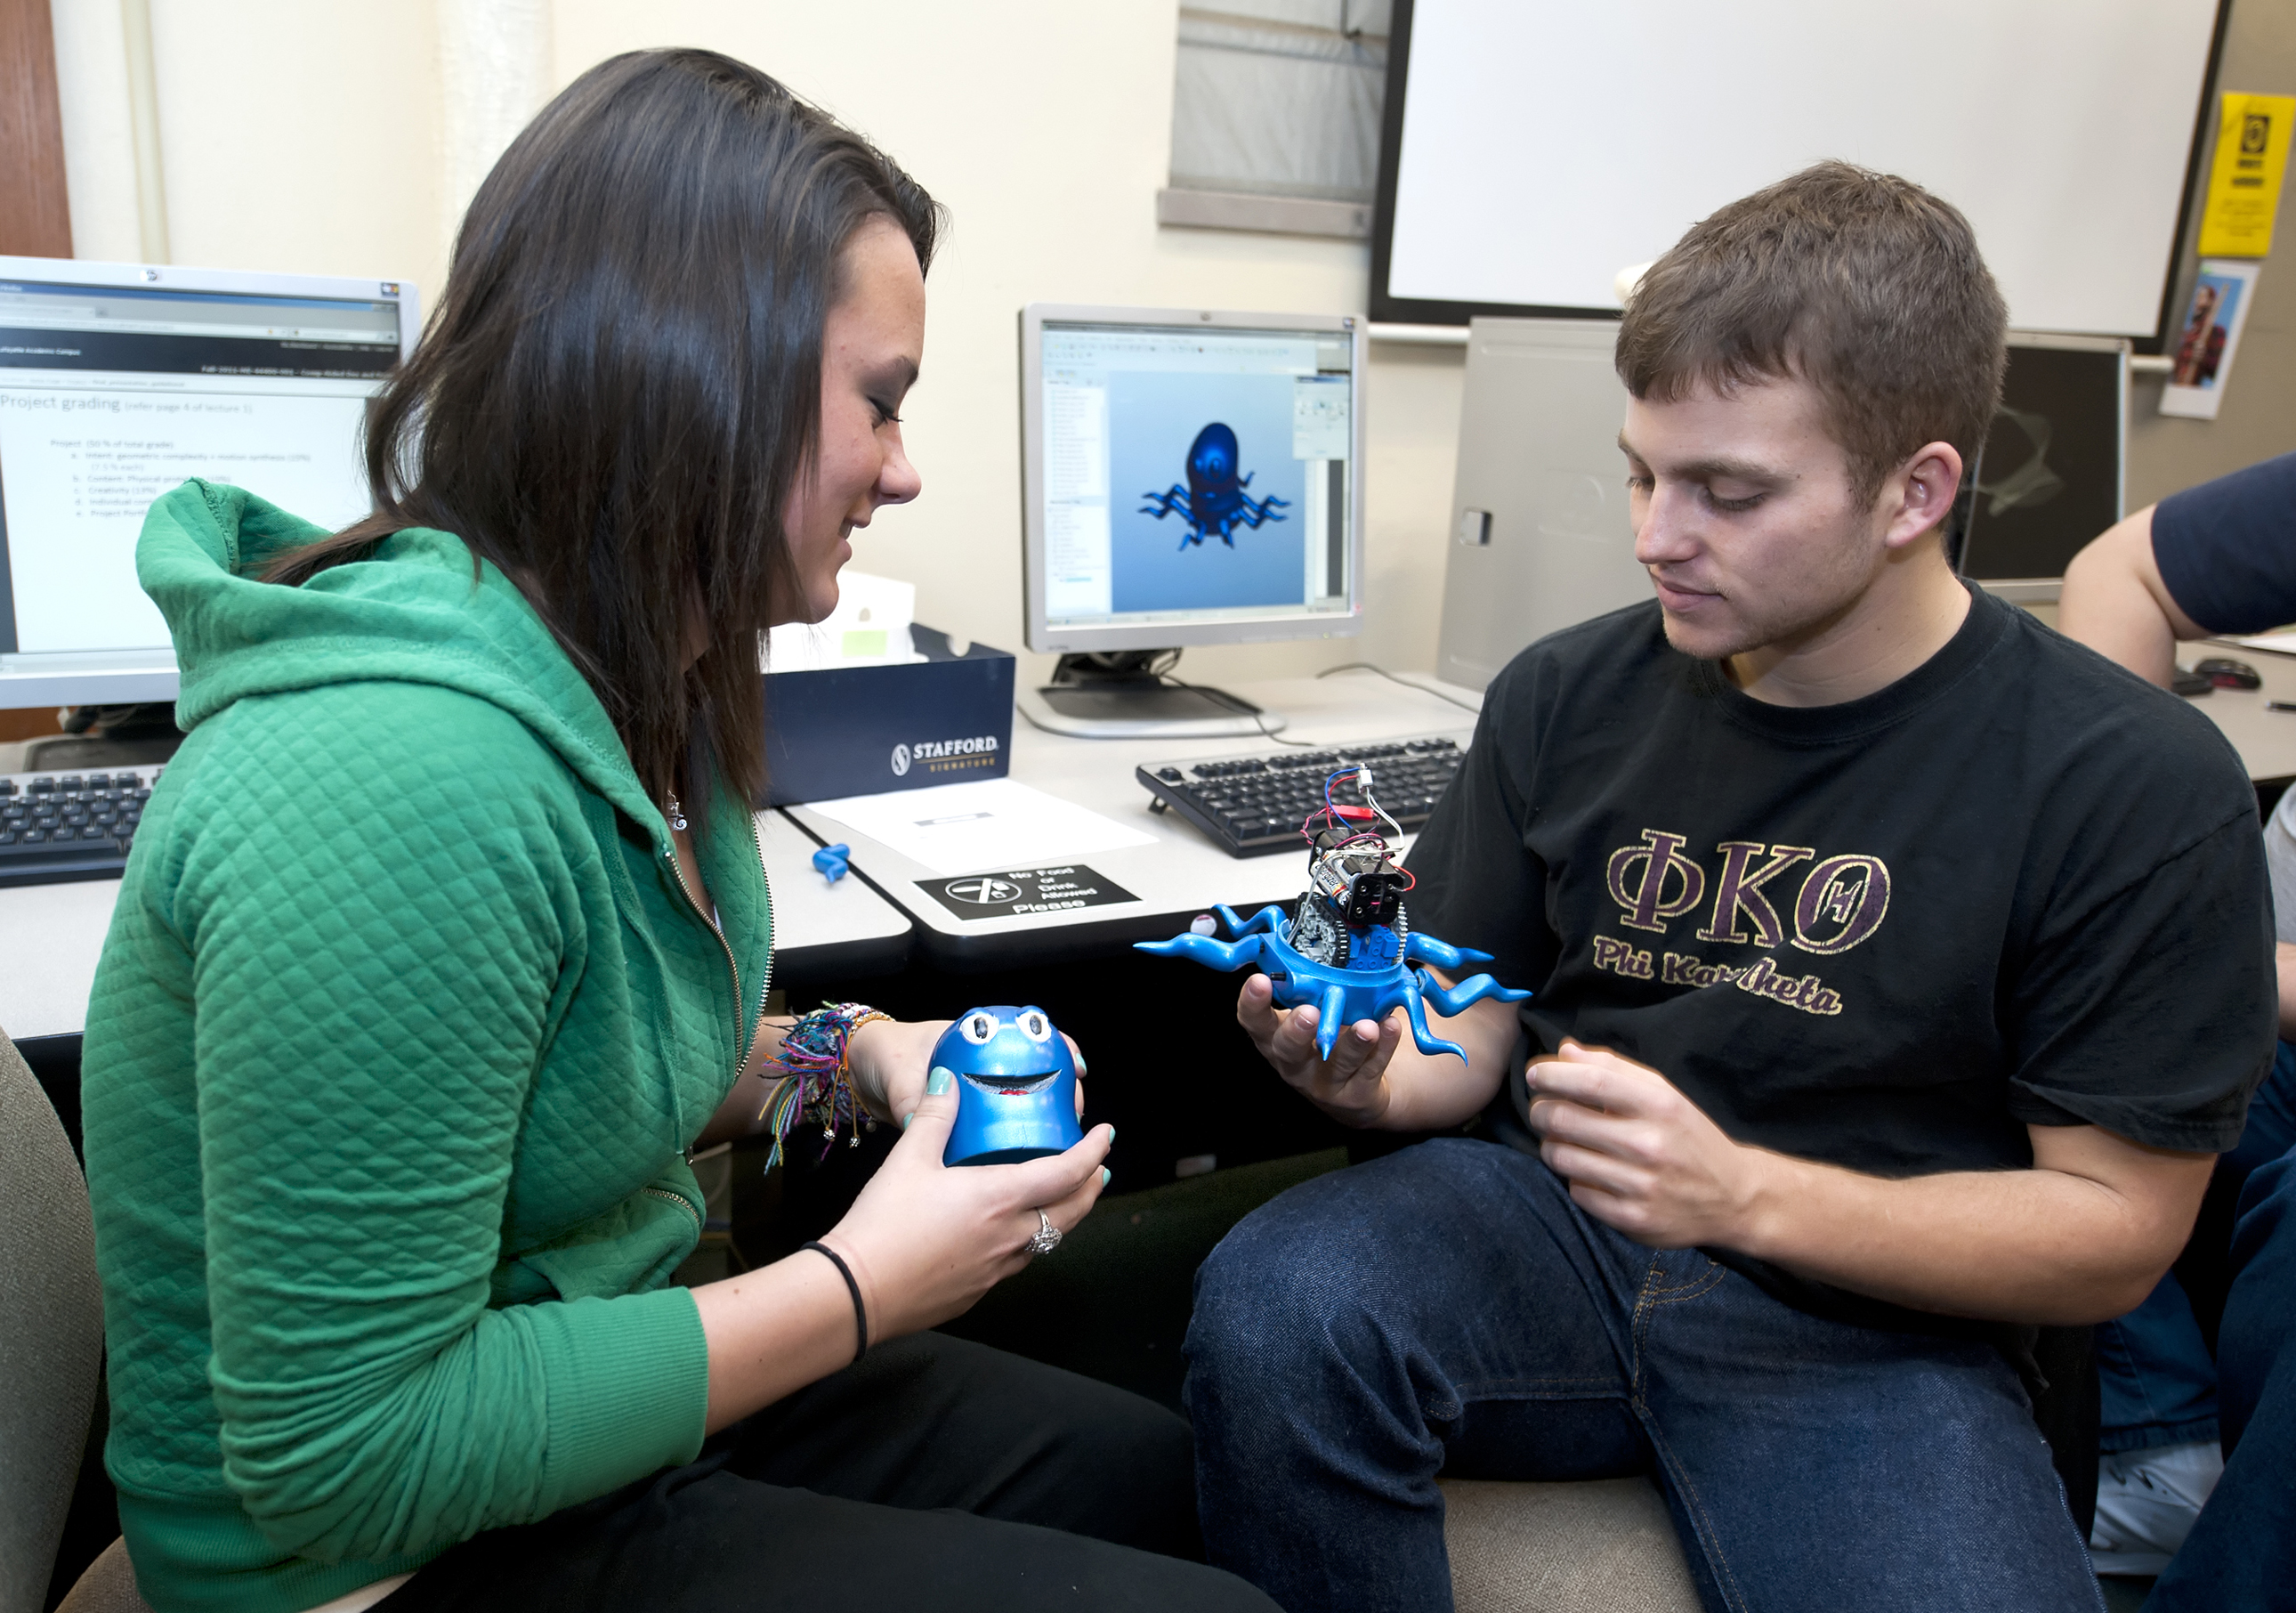 Engineering students to display toys created in design course